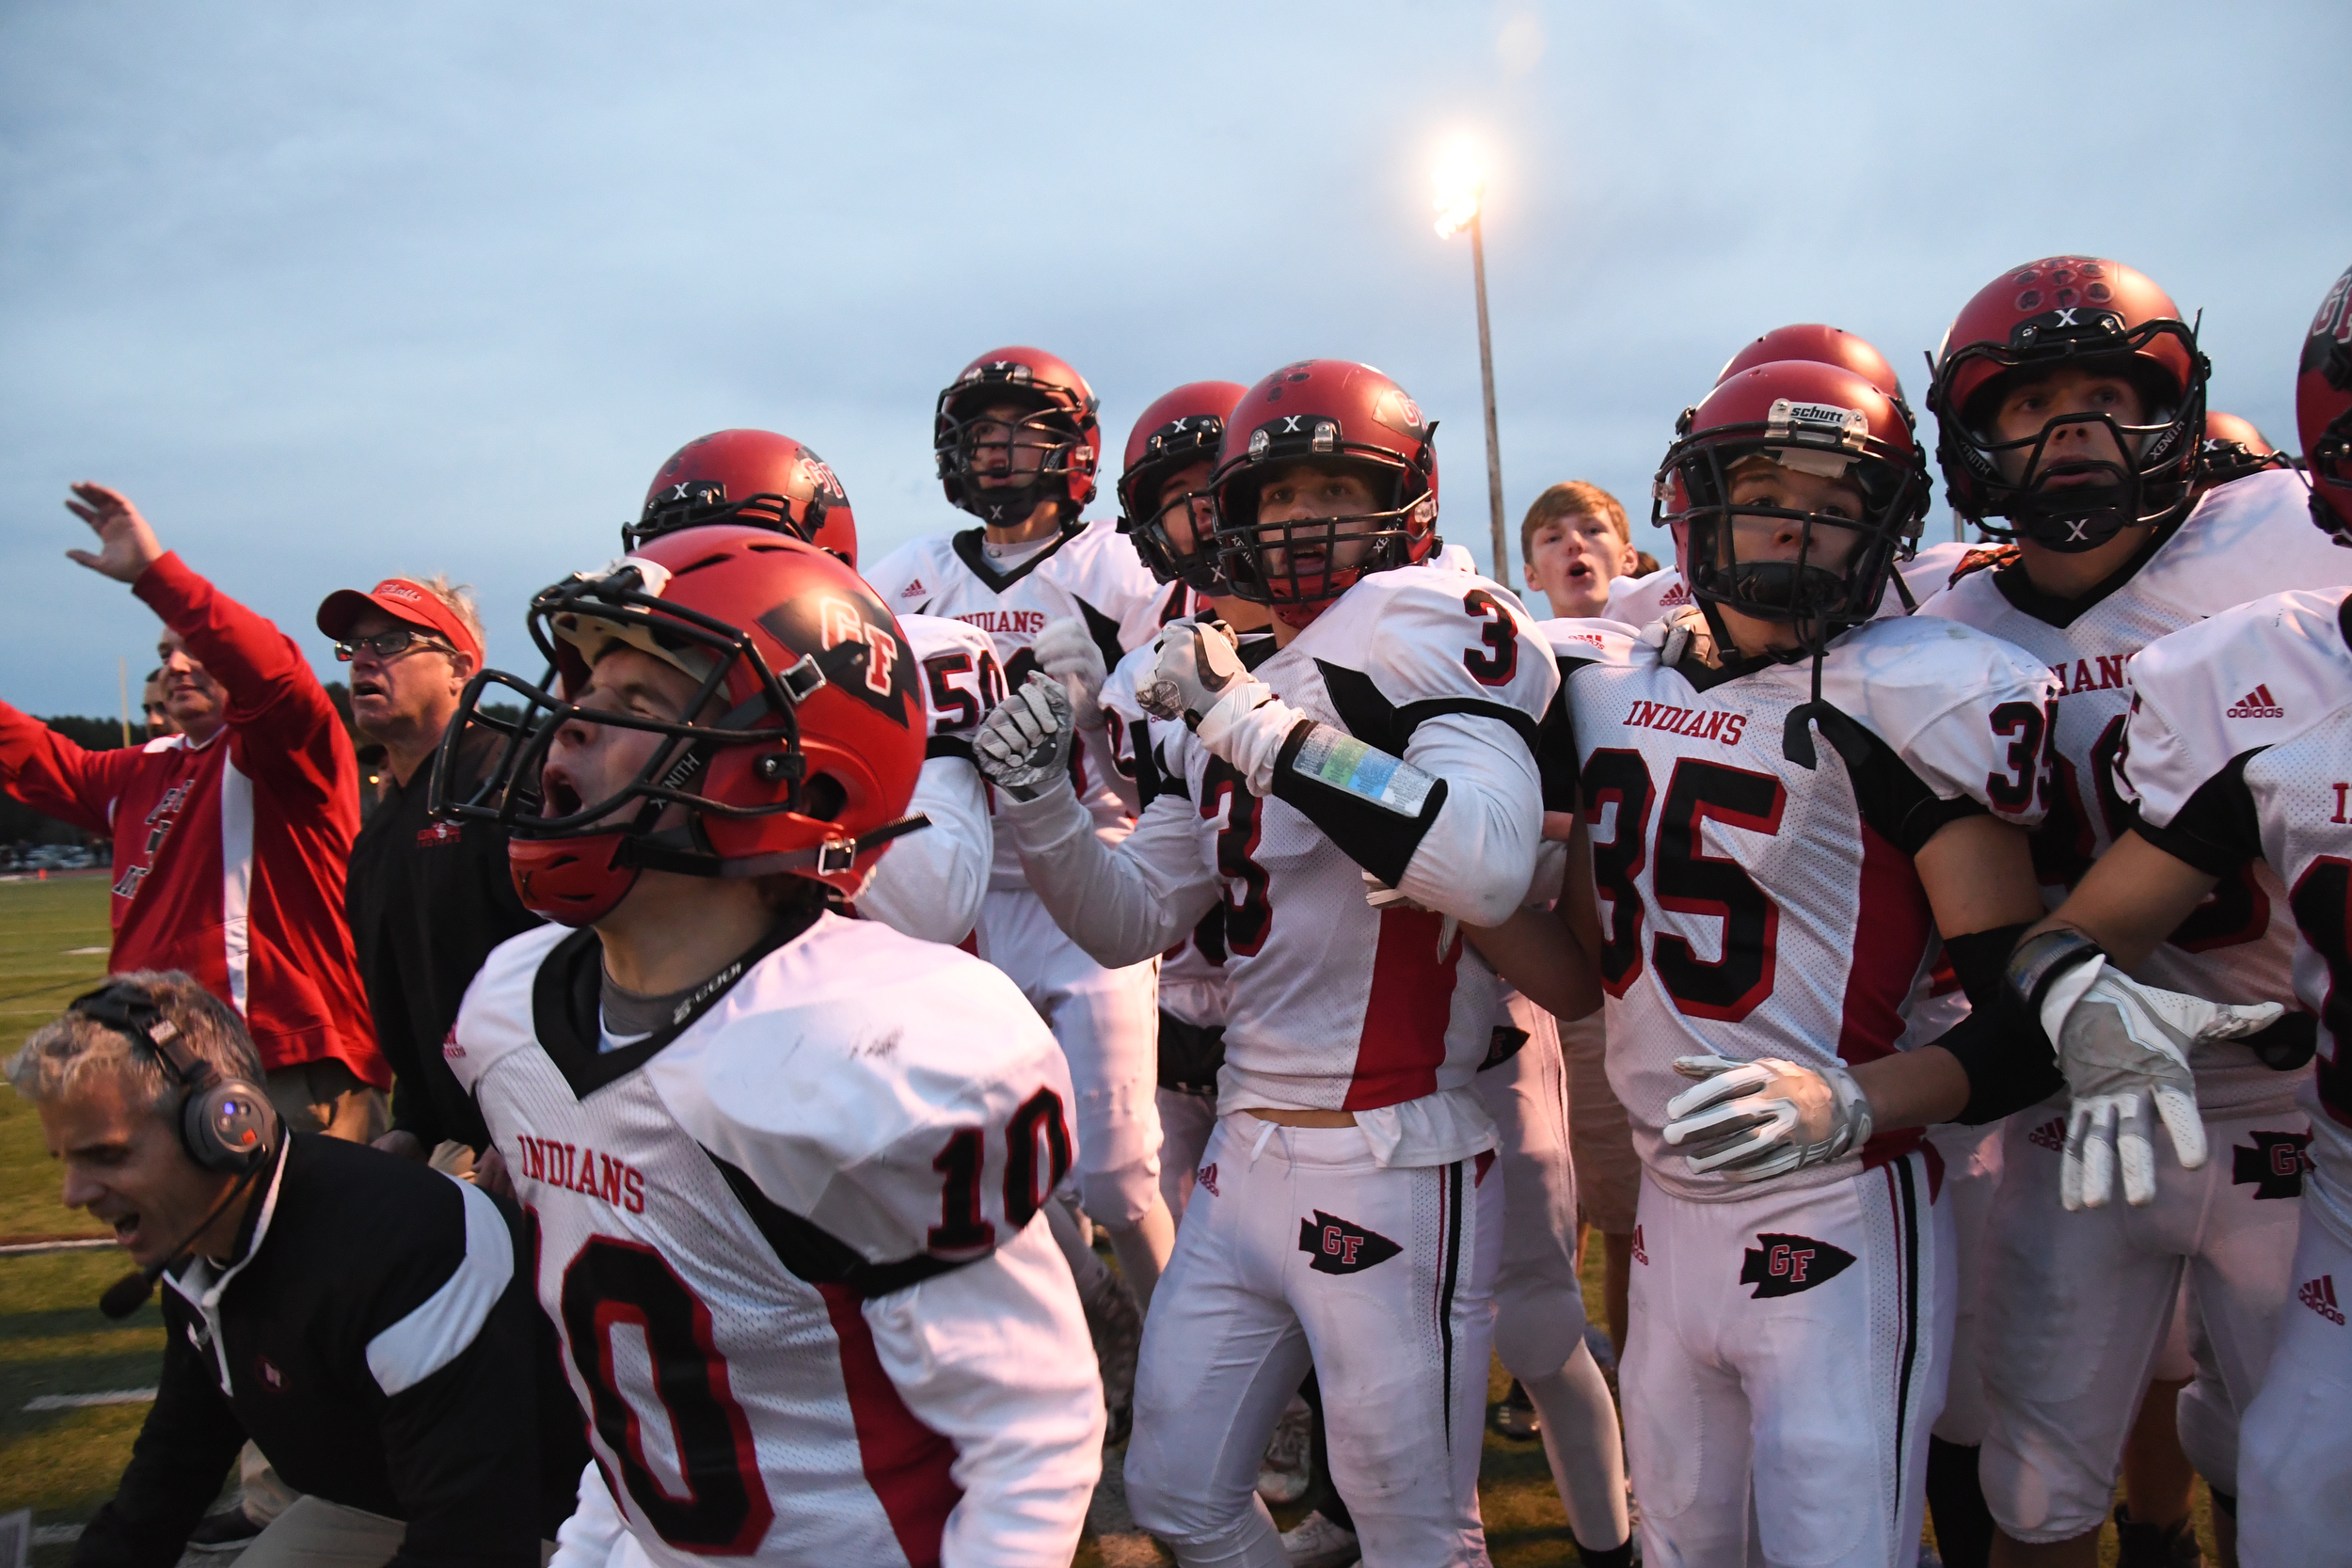 Glens Falls football players cheer after a first down is made in the fourth quarter during the Class B Super Bowl against Schuylerville on Saturday, Nov. 4, 2017 in Clifton Park, N.Y.. Glens Falls beat Schuylerville 40-37 after making a field goal in overtime.